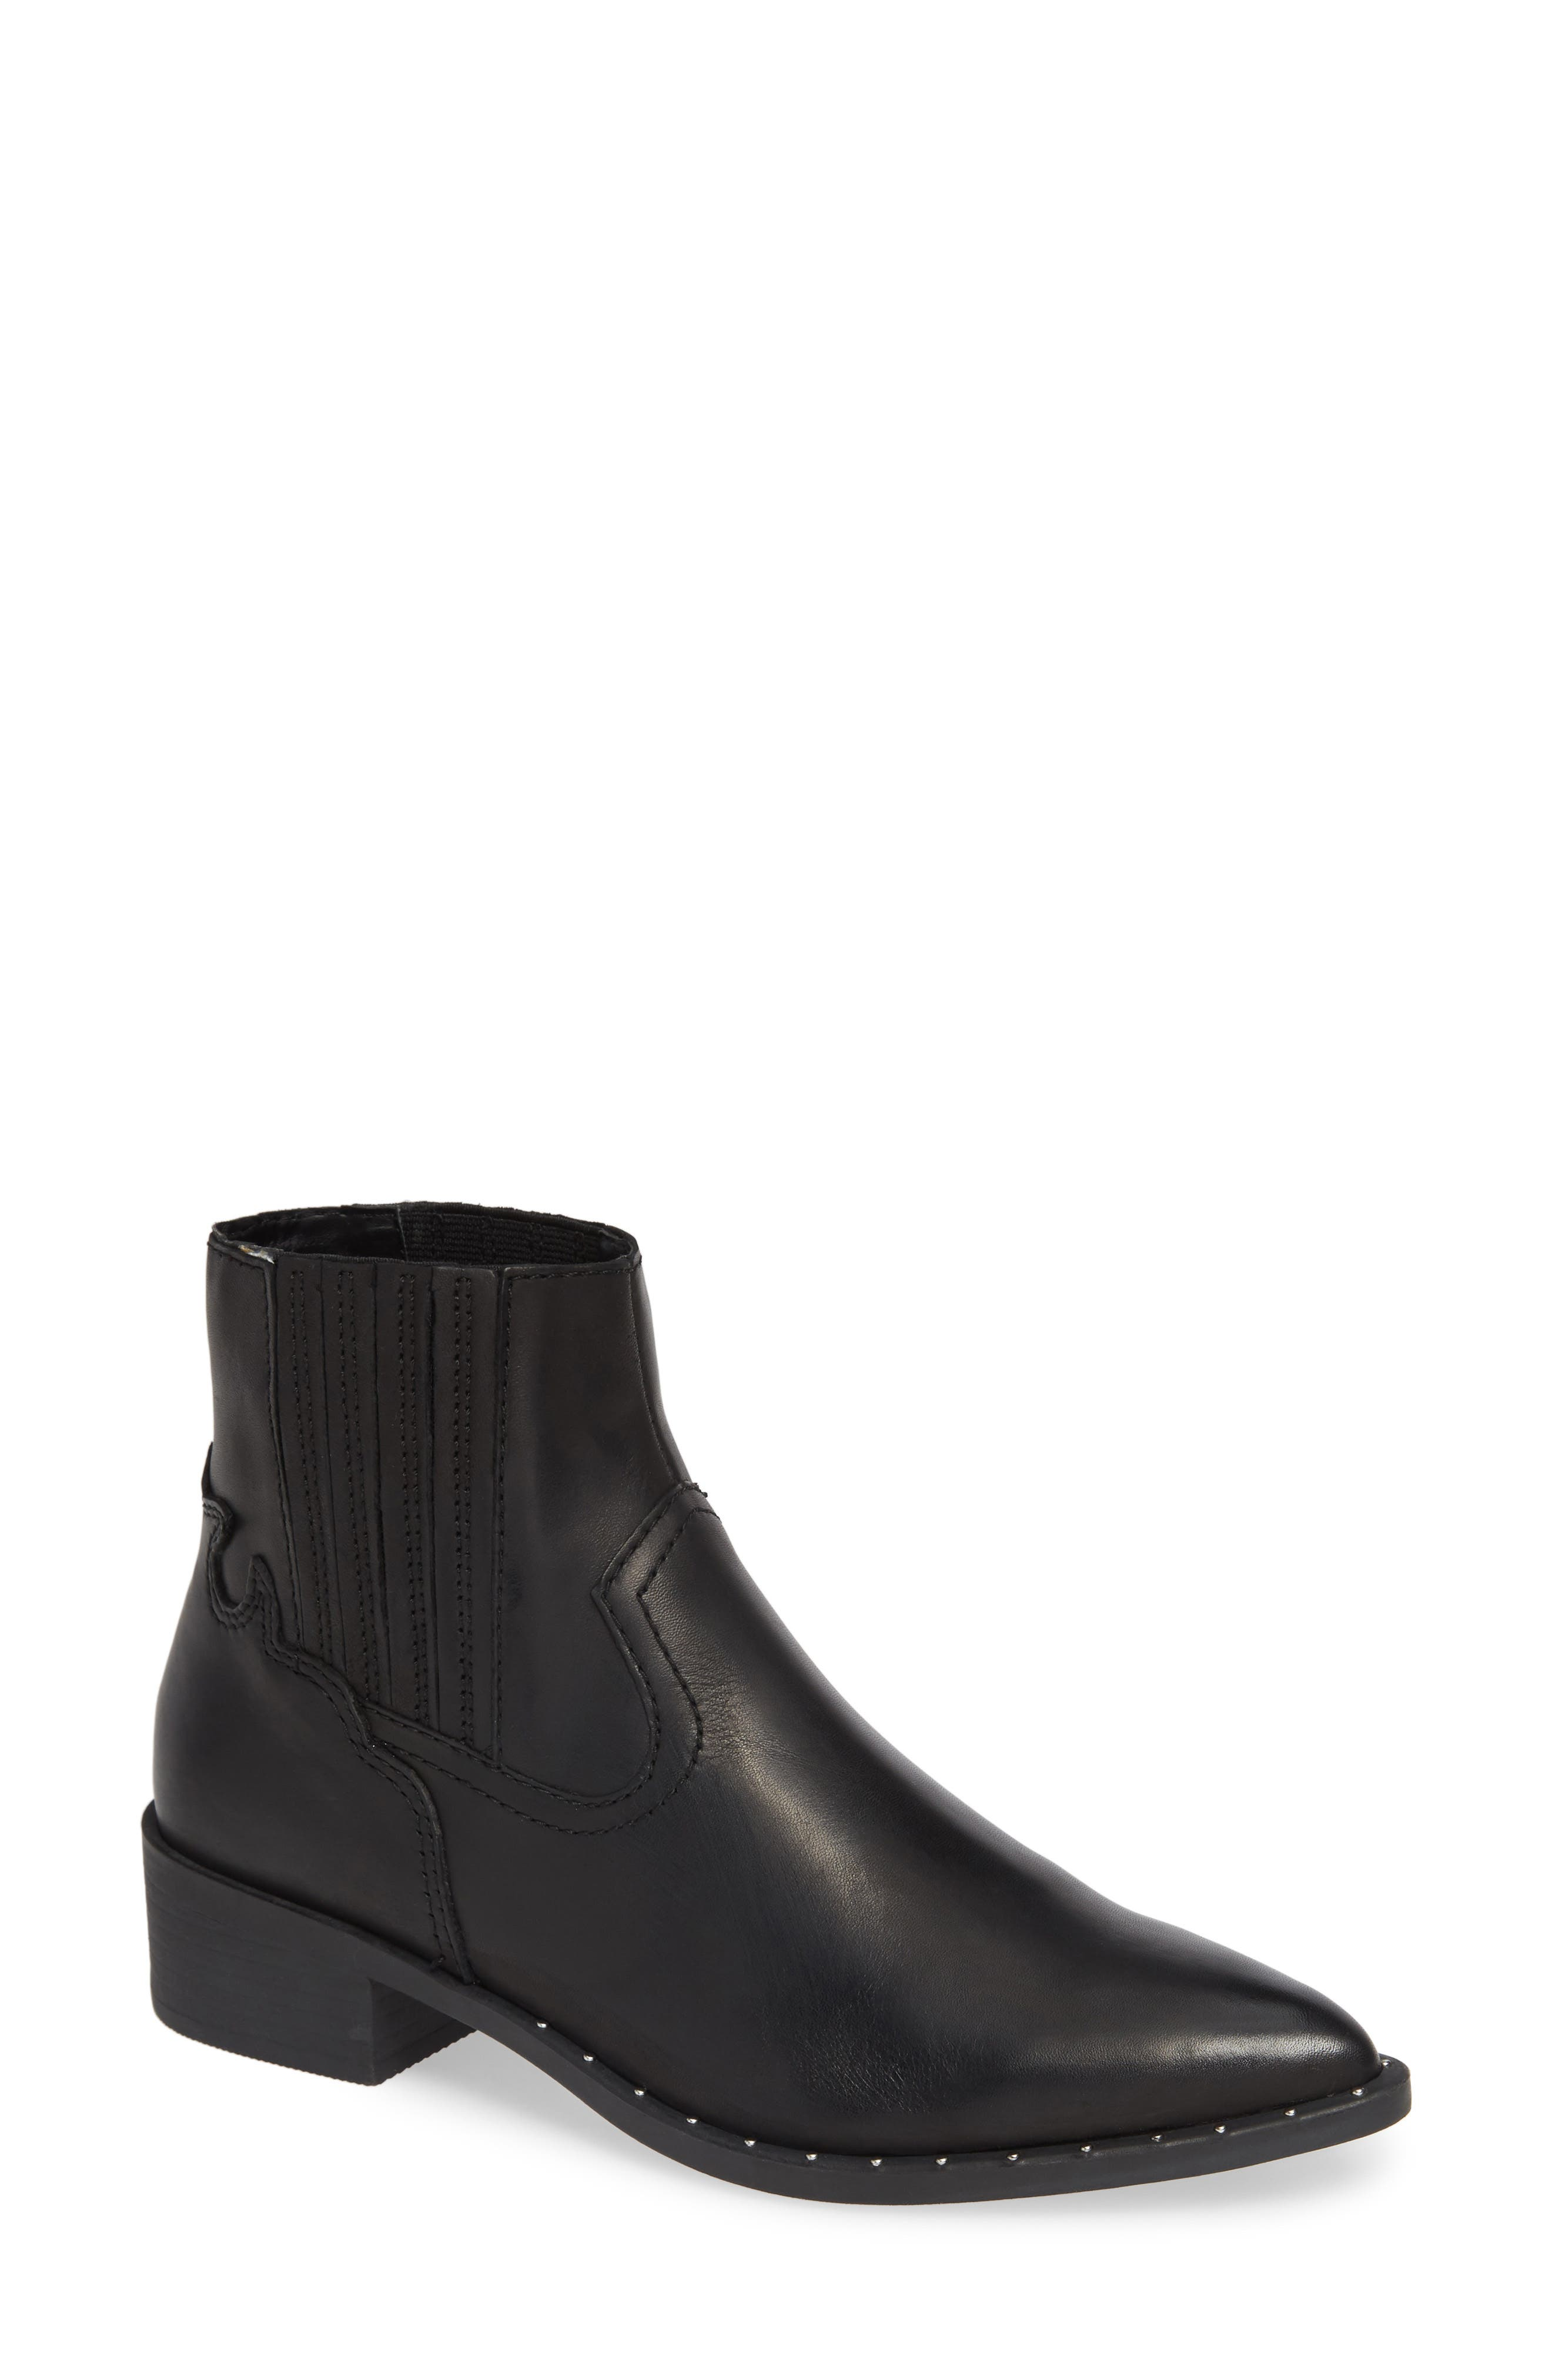 Juke Bootie,                             Main thumbnail 1, color,                             BLACK LEATHER